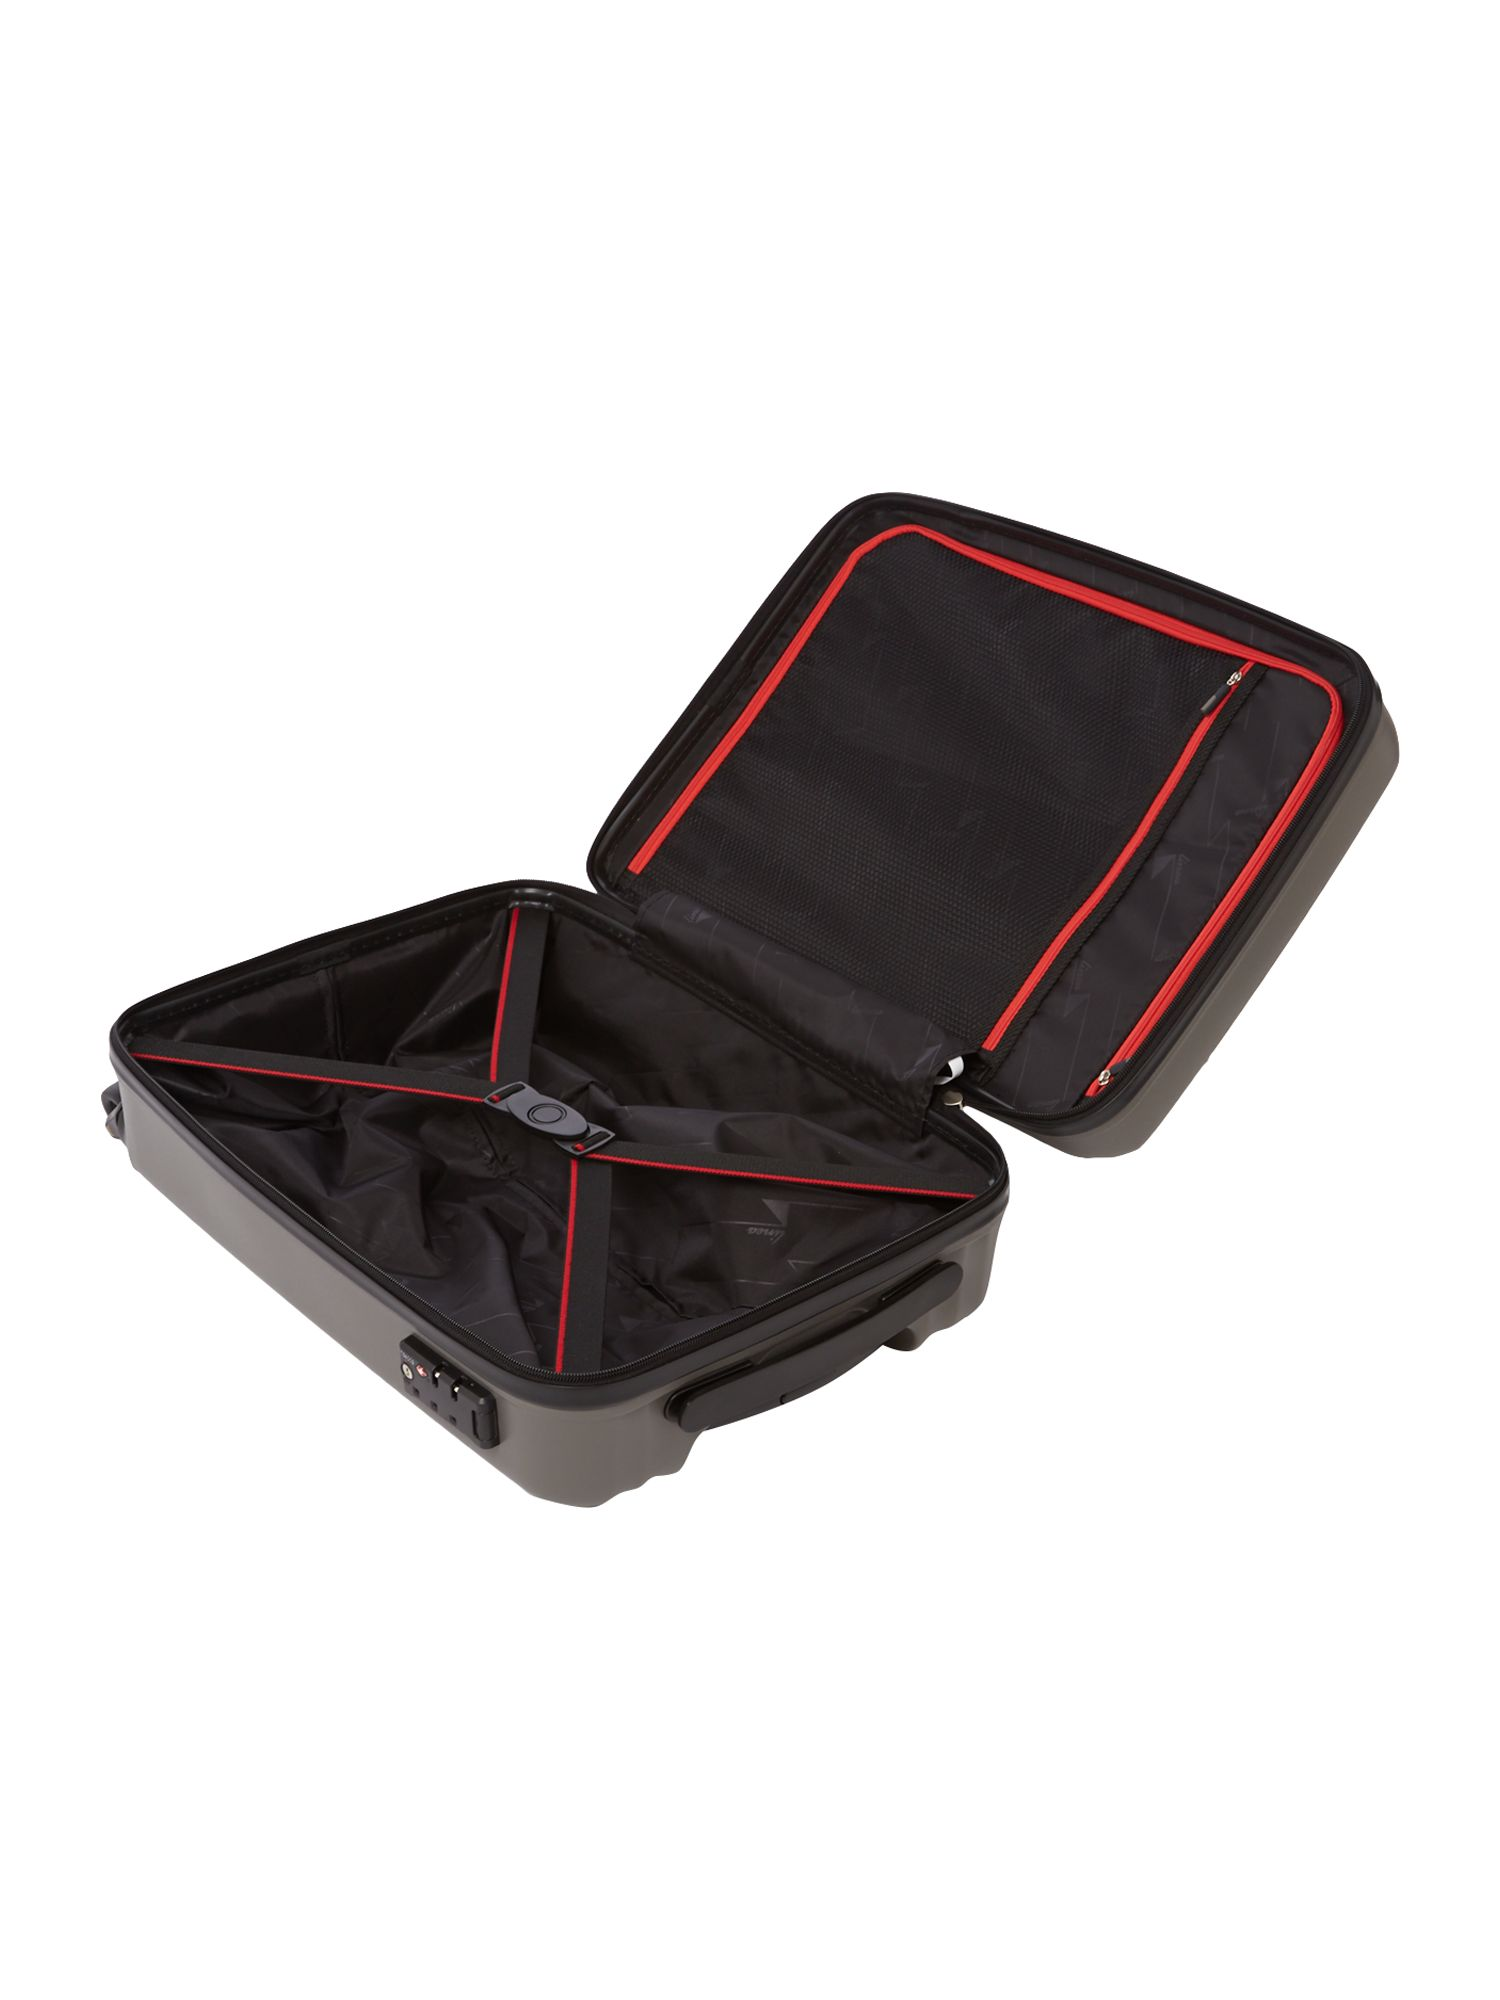 Moblite grey 4 wheel cabin case